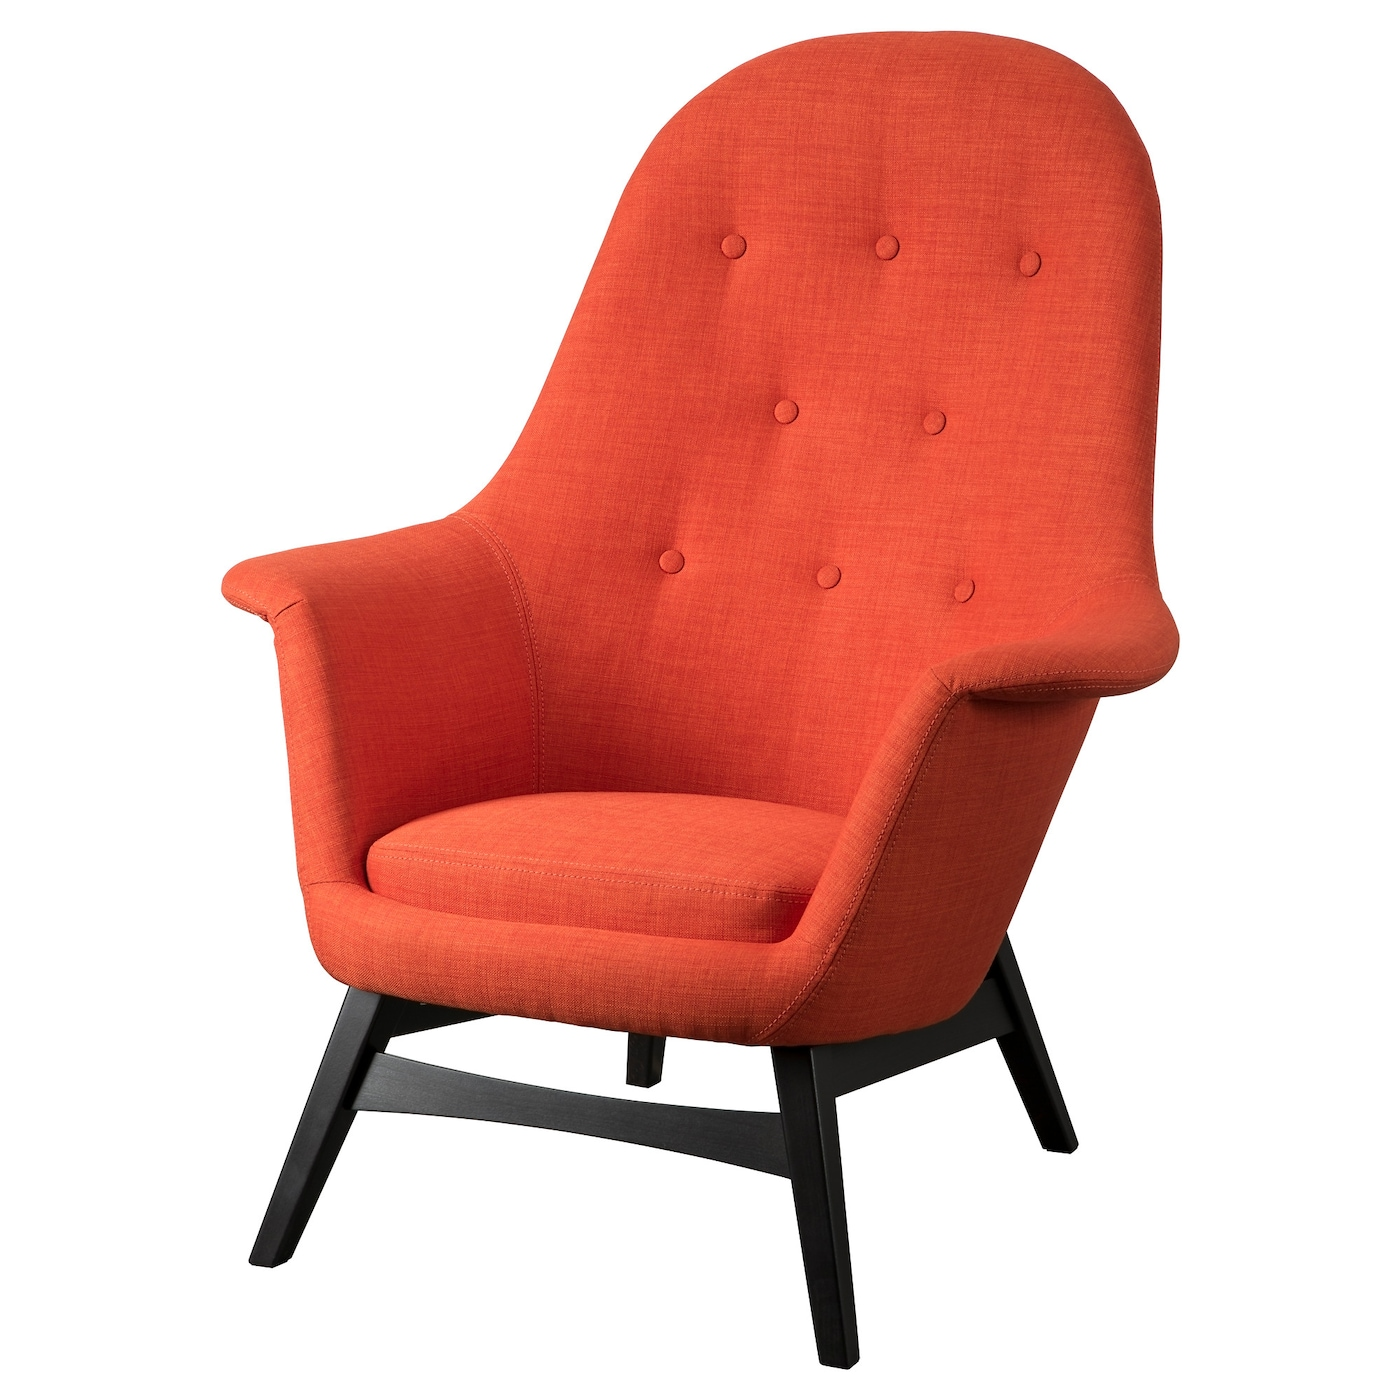 IKEA BENARP Armchair The High Back Gives Good Support For Your Neck And Head